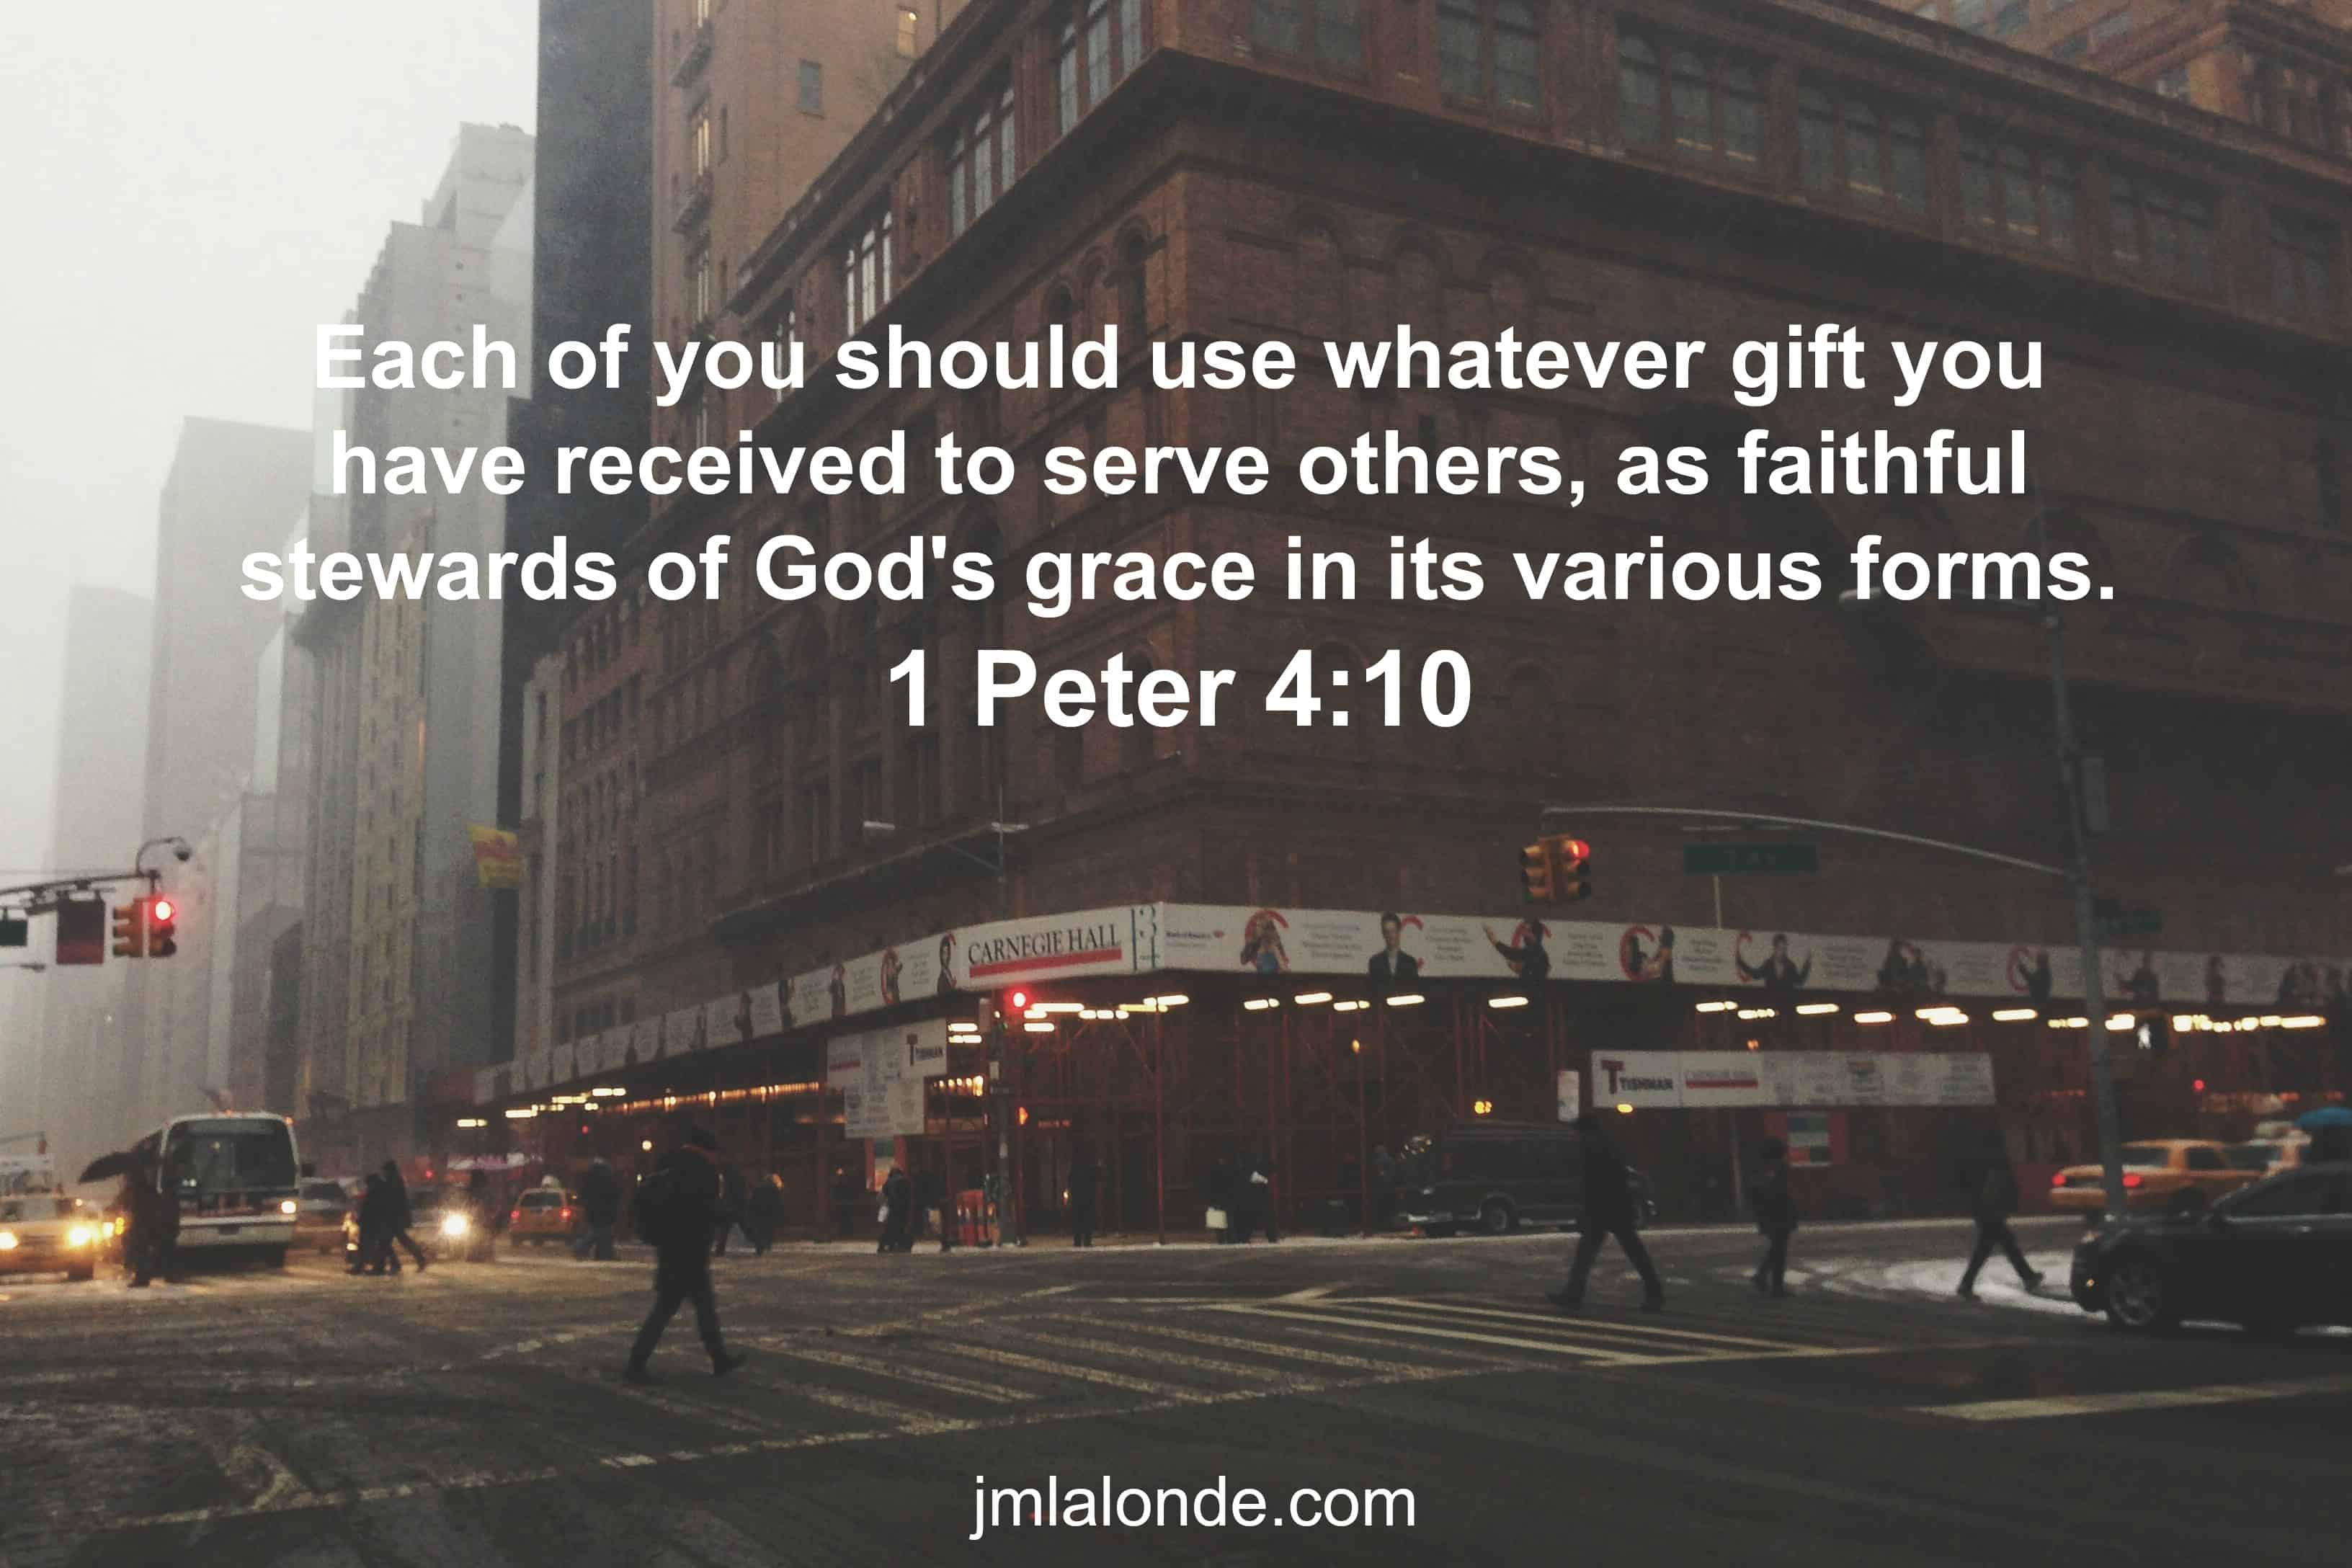 7 bible verses every leader needs to memorize joseph lalonde 1 peter 410 niv each of you should use whatever gift you have received to serve others as faithful stewards of gods grace in its various forms negle Image collections